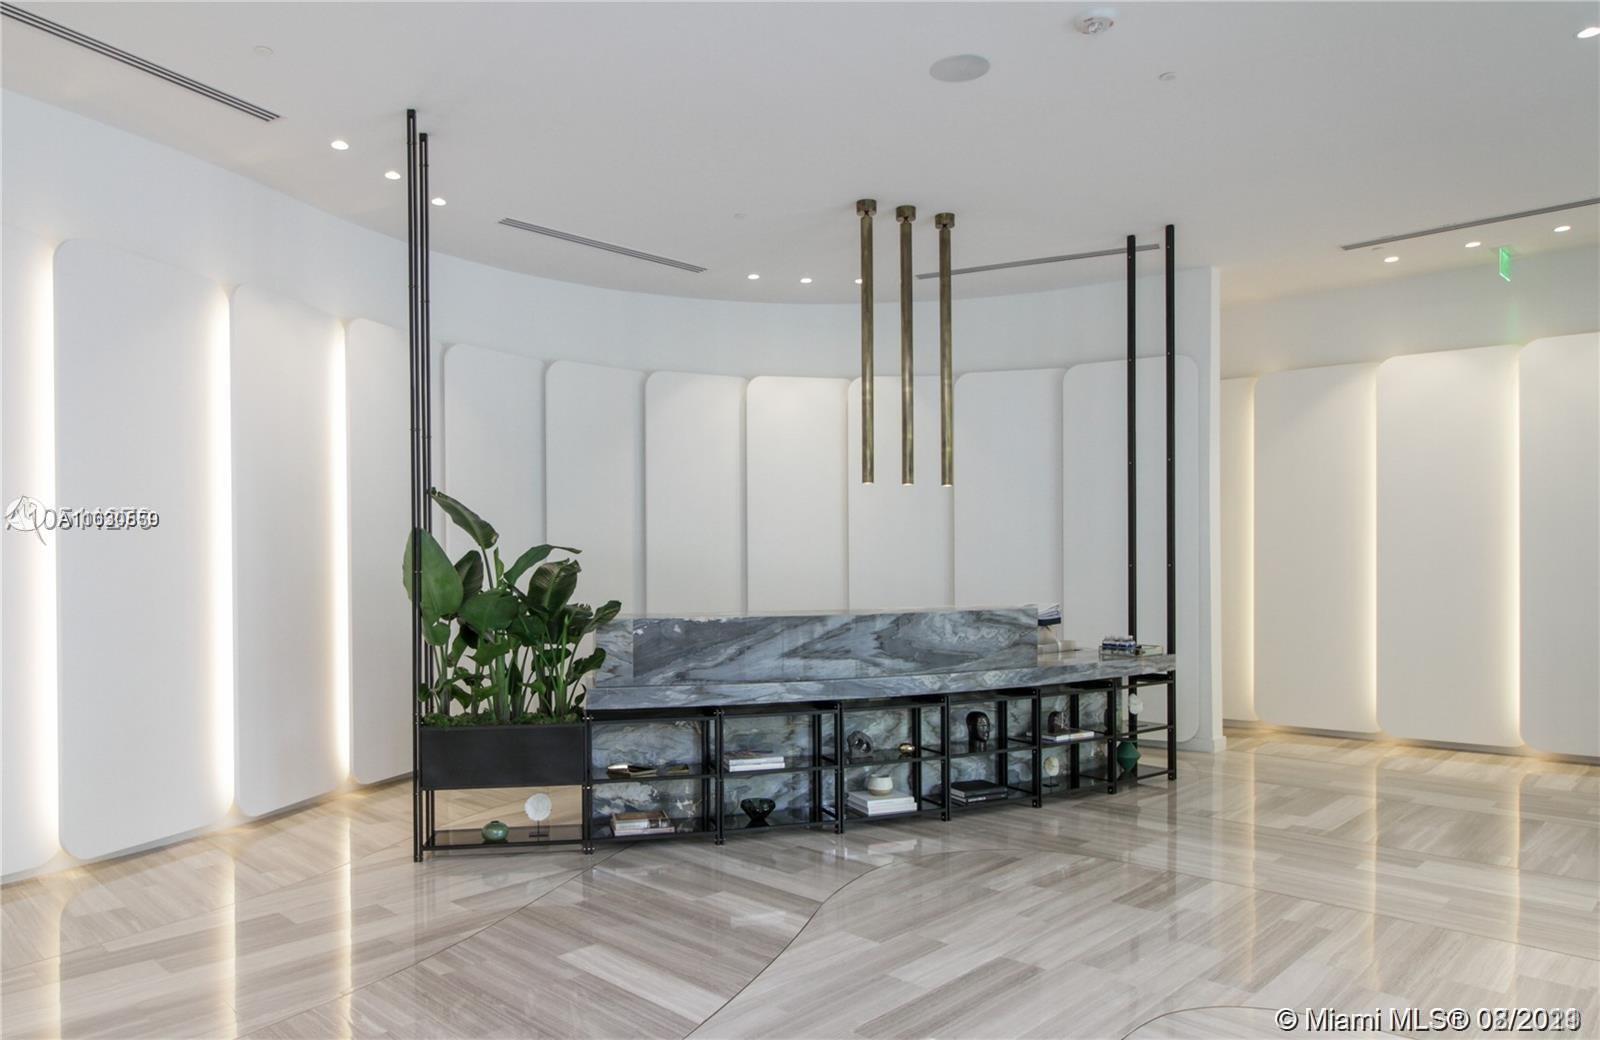 Great opportunity to live in the most luxurious condo in Coconut Grove. The kitchen designed by William Sofeld, custom Italian glass cabinetry with wood hewn island, Paolanzzo marble countertops, Stainless Steel undercount sink, bronze mirror backsplash, sub-Zero and Wolf appliances. The Club Tower has its own gym and pool in roof top terrace. 24/7 concierge, Valet parking, state of the art amenities including, resort style pools, wine storage, fitness rooms, sauna, steam room, spa, concierge, outdoor and indoor play areas for children, conference room with video conference and integrated media system. 28 seat private screening room, yoga room and much more. Walking distance to restaurants and shops. Easy to show.